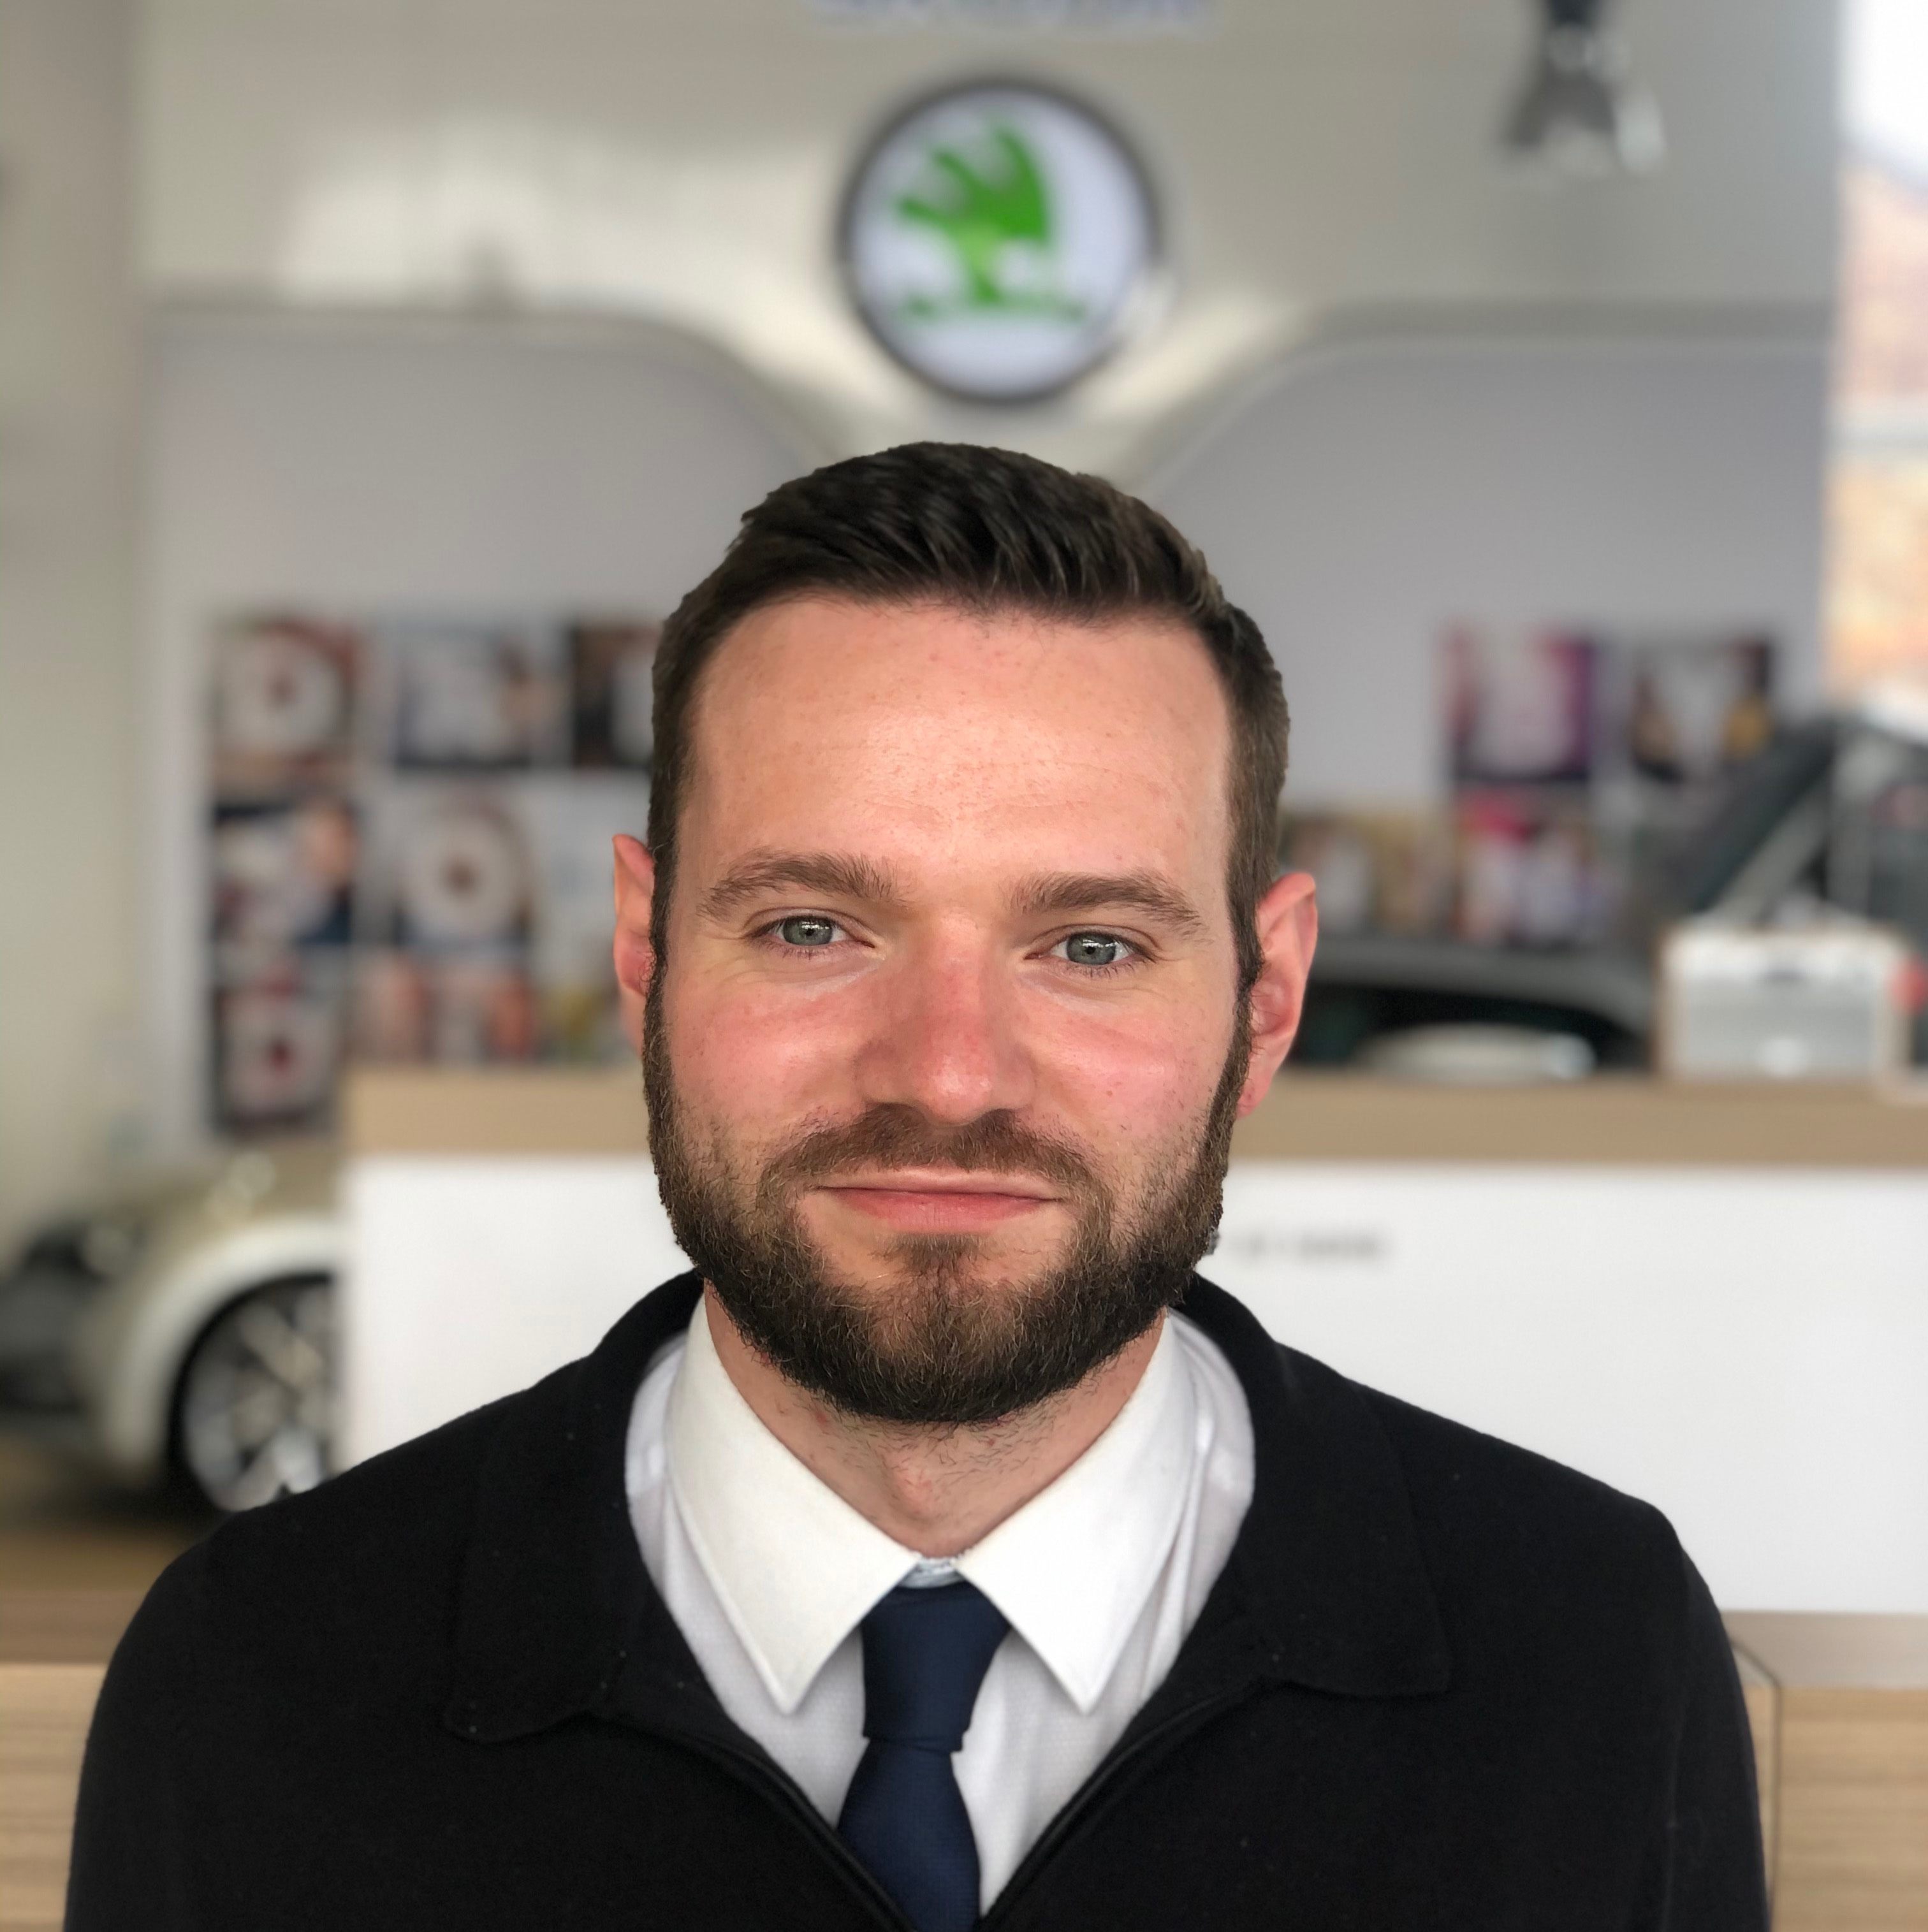 Philip Joins The Sales Team